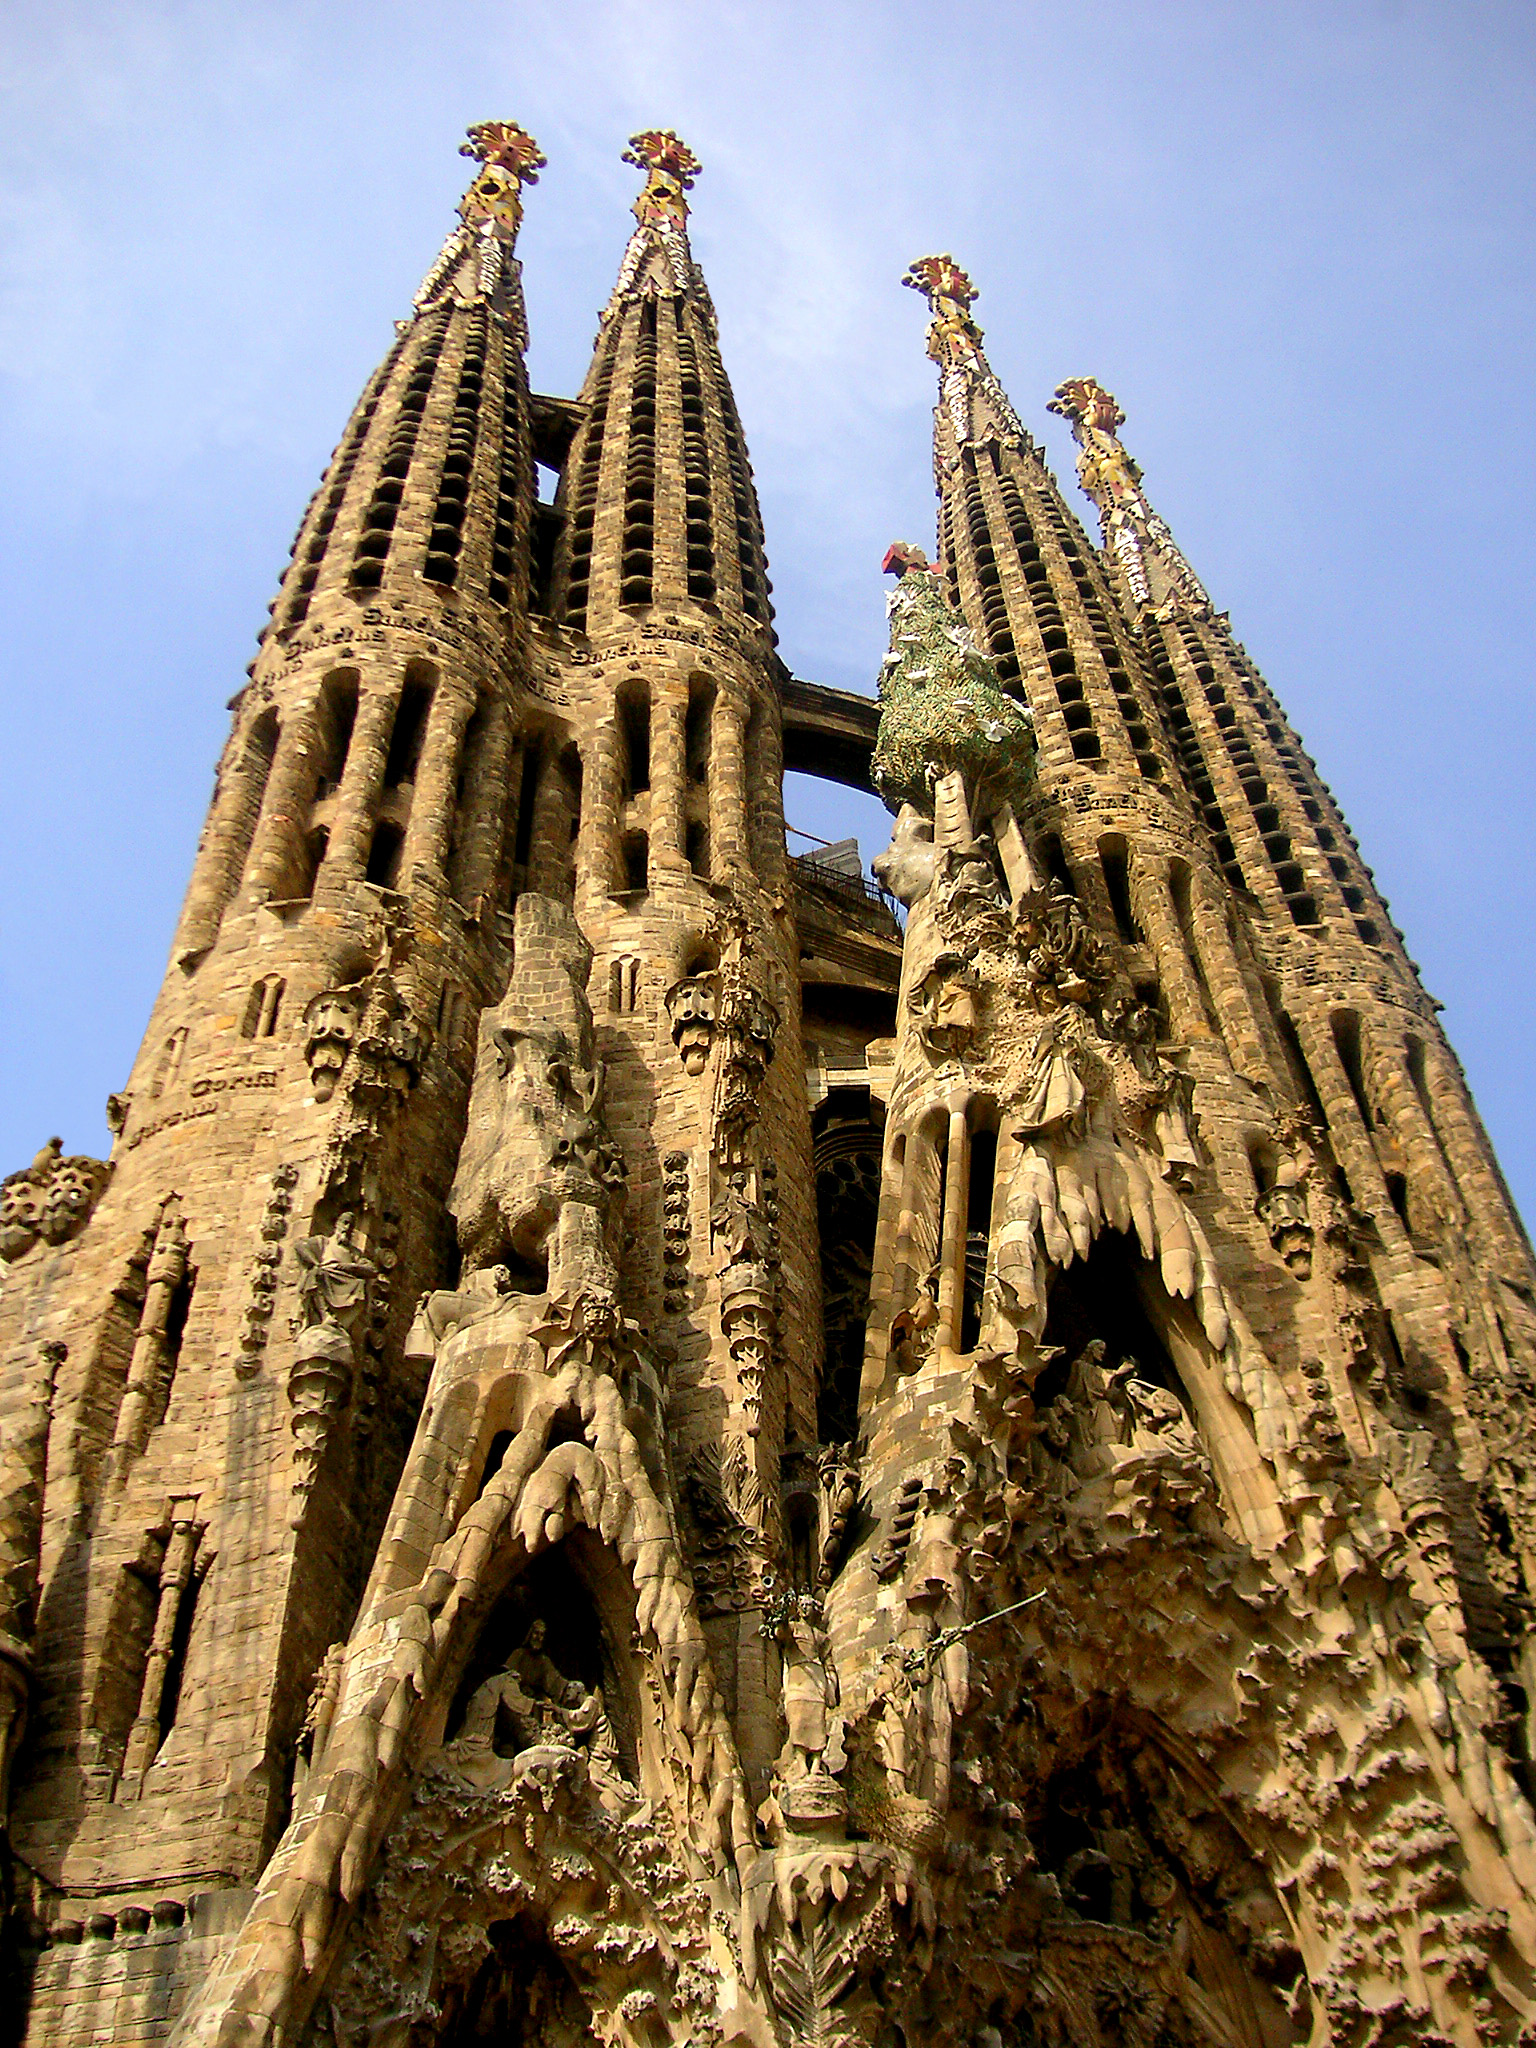 Increased visitor numbers as Barcelona continues recovery